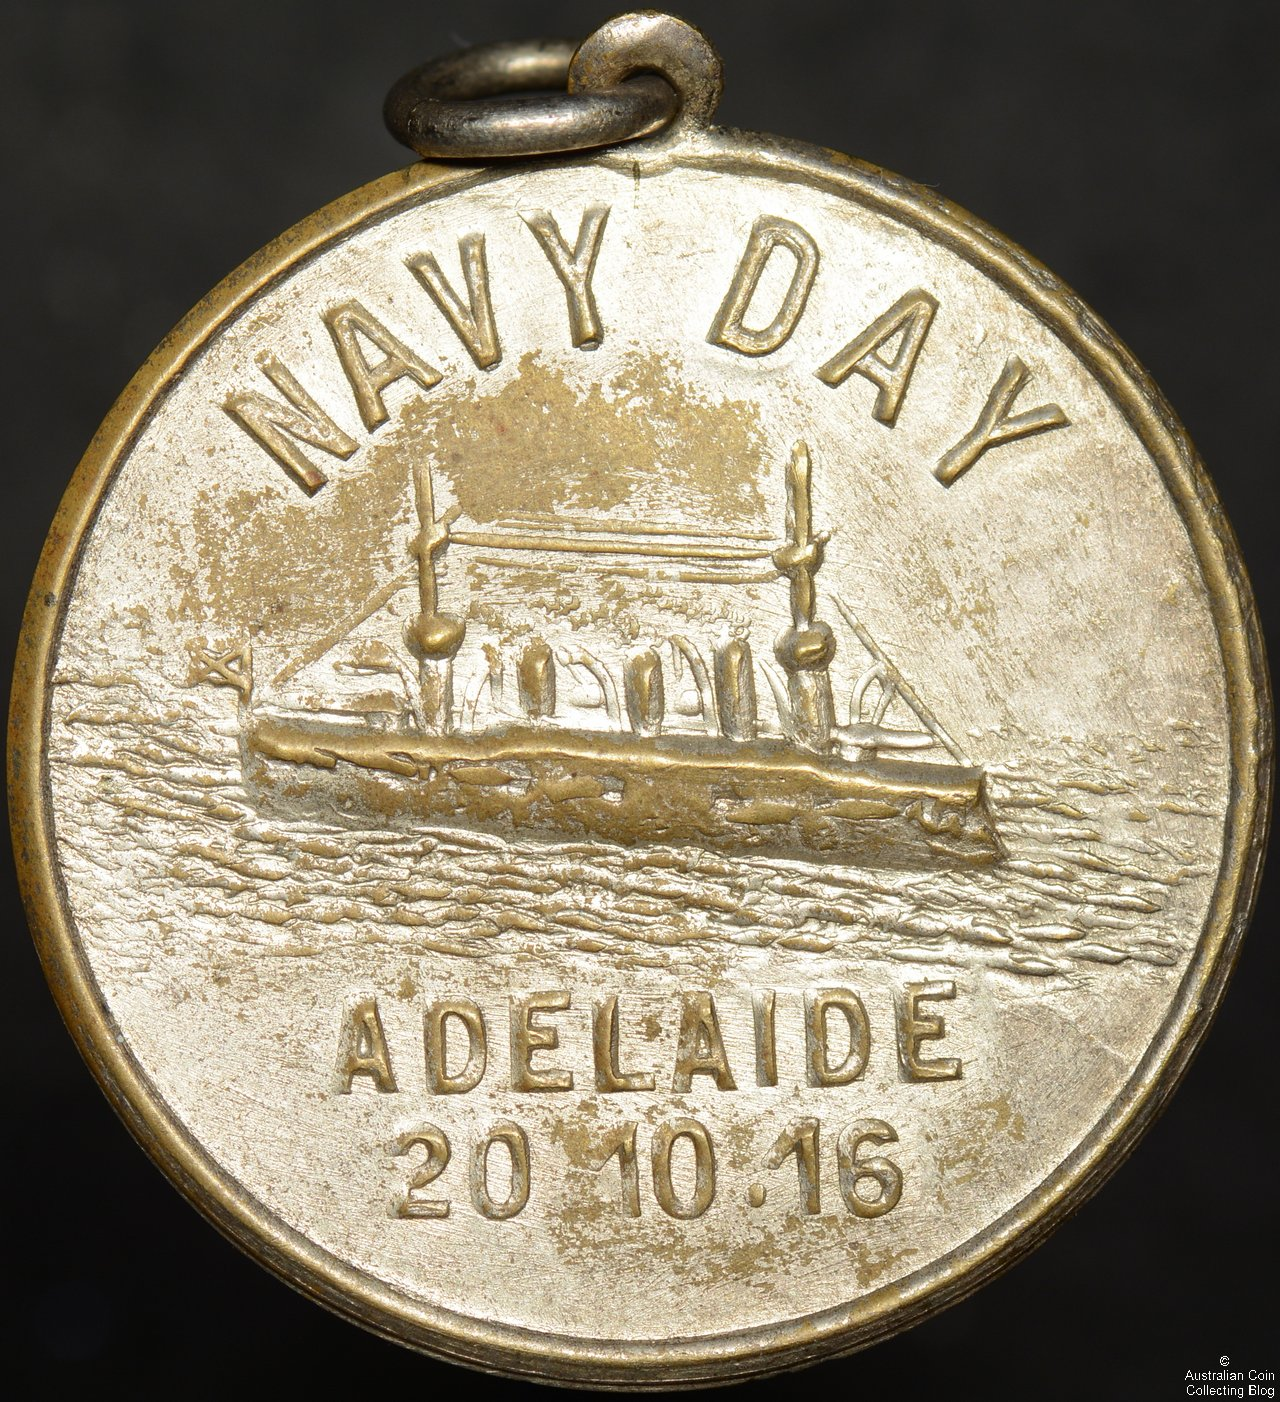 1916 Adelaide Navy Day Medallion – Silvered